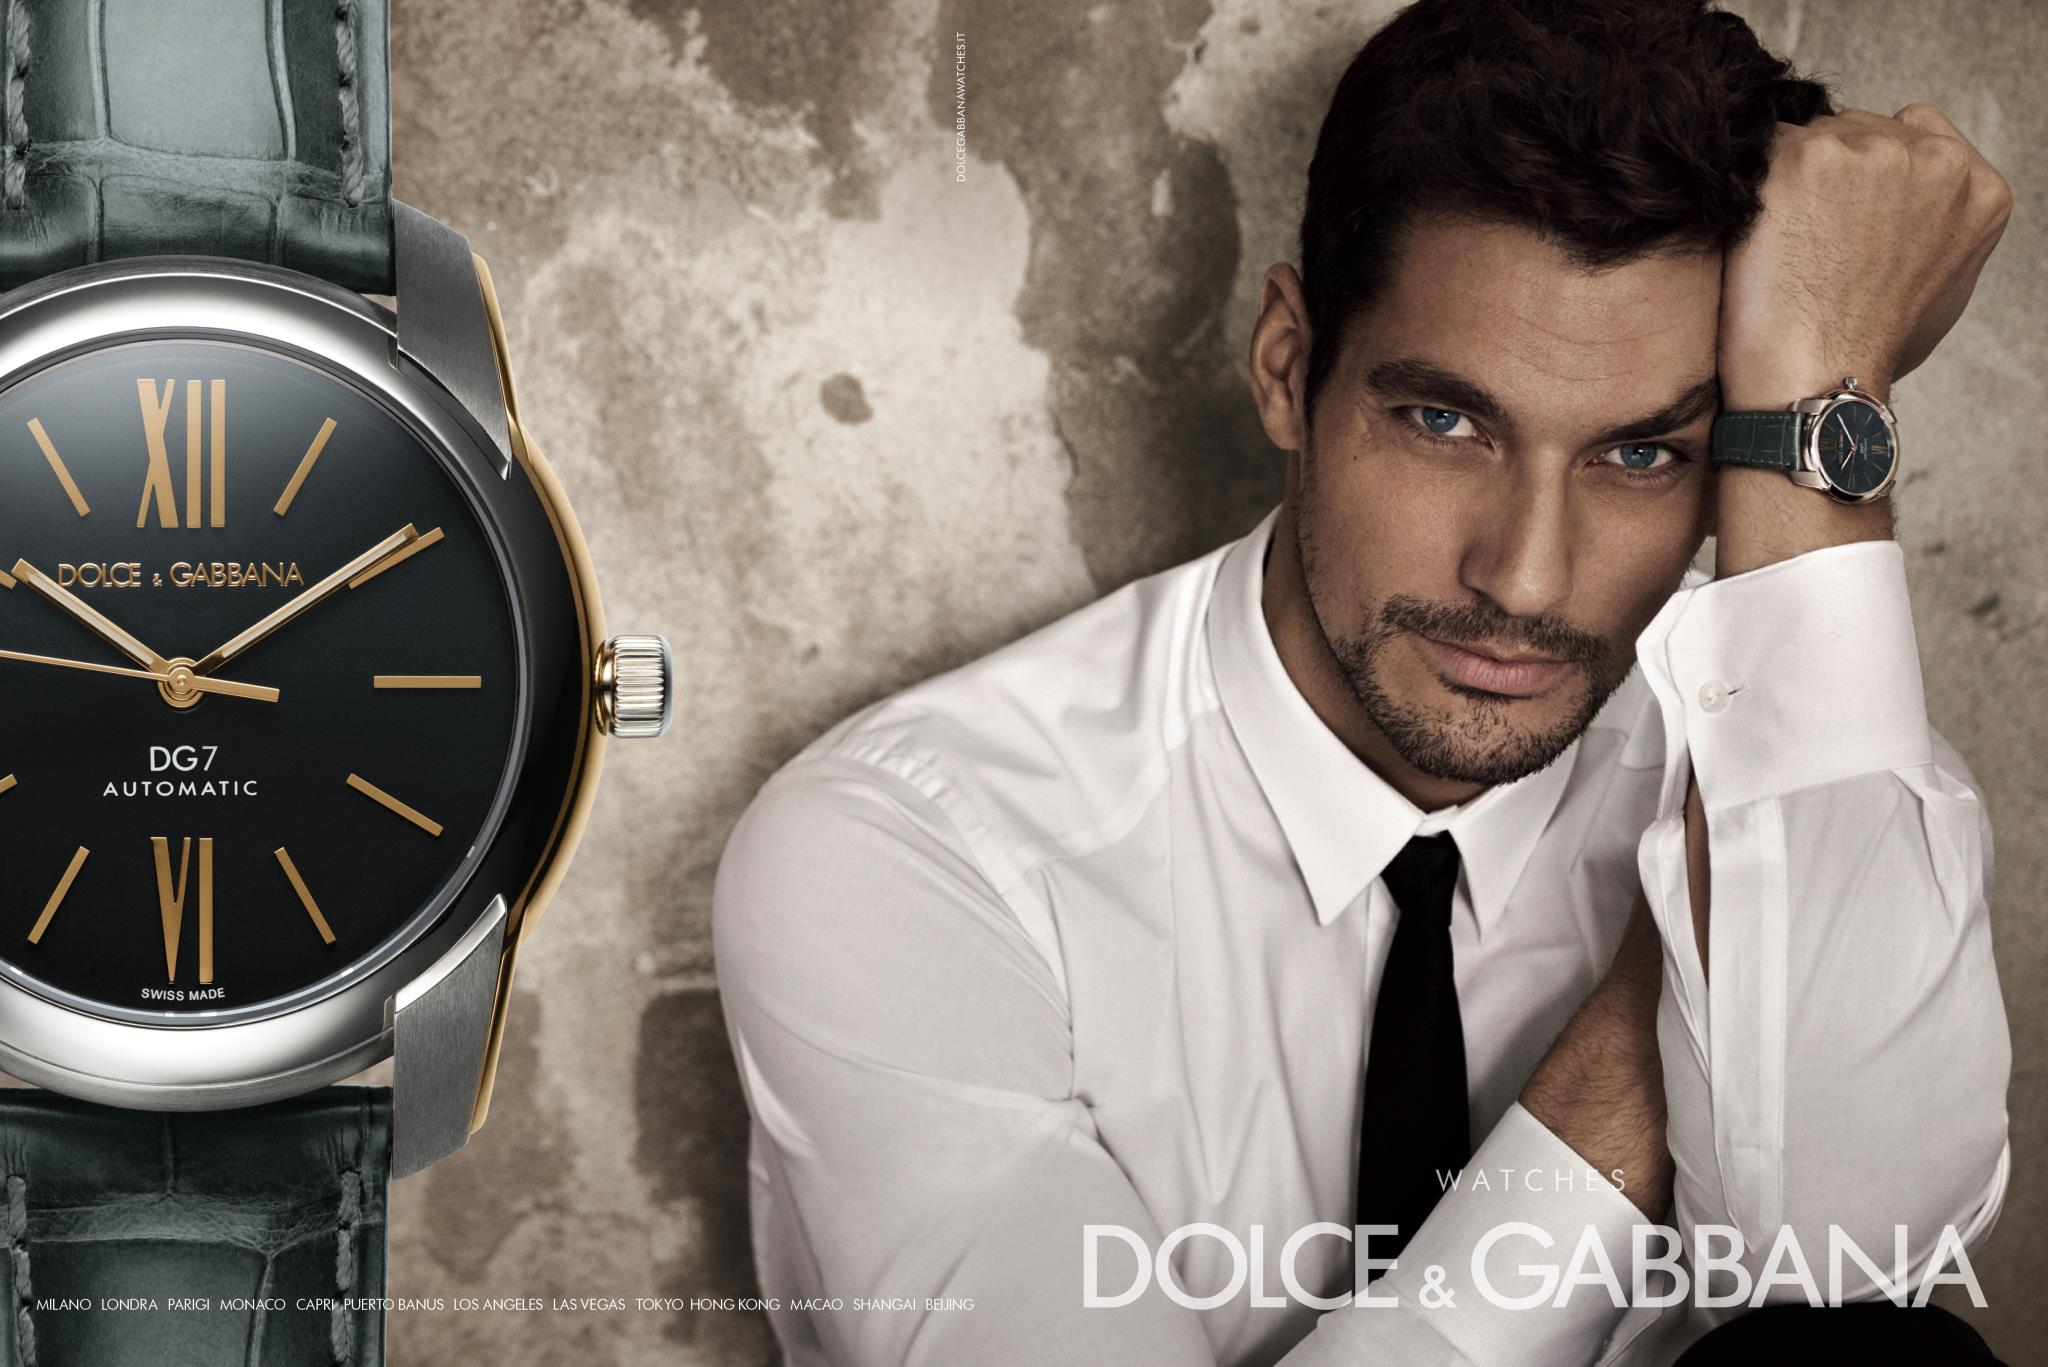 Dolce & Gabbana's Men's Watches Campaign